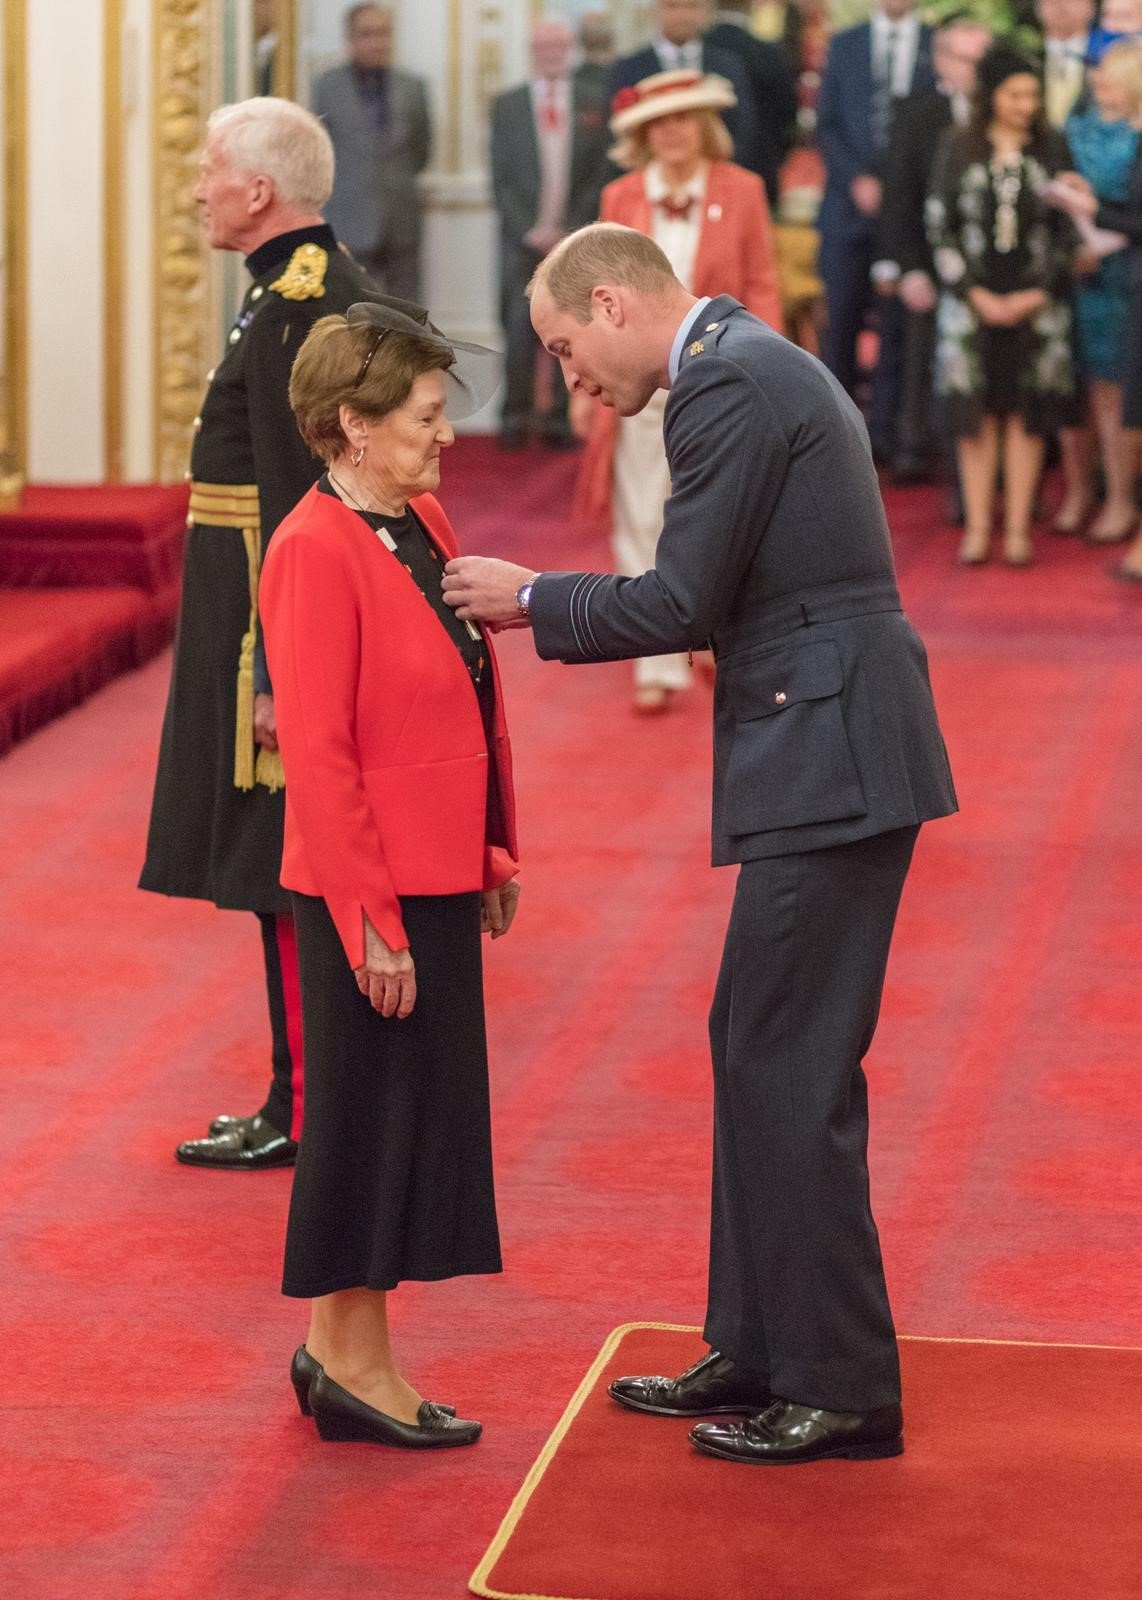 anne-mcewan-obe-investiture-duke-cambridge (1)